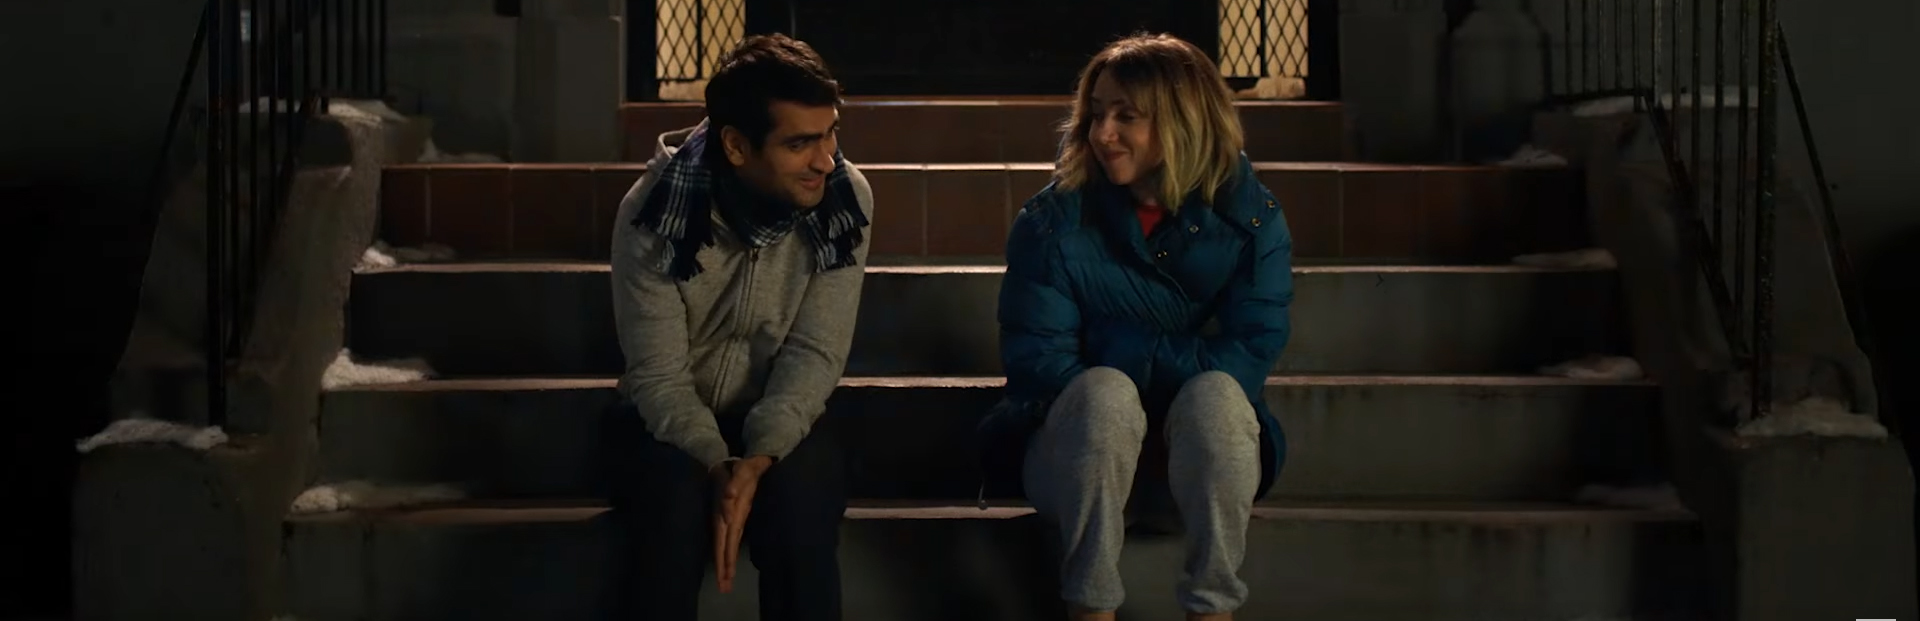 The Big Sick. Image Credit: Amazon Studios.